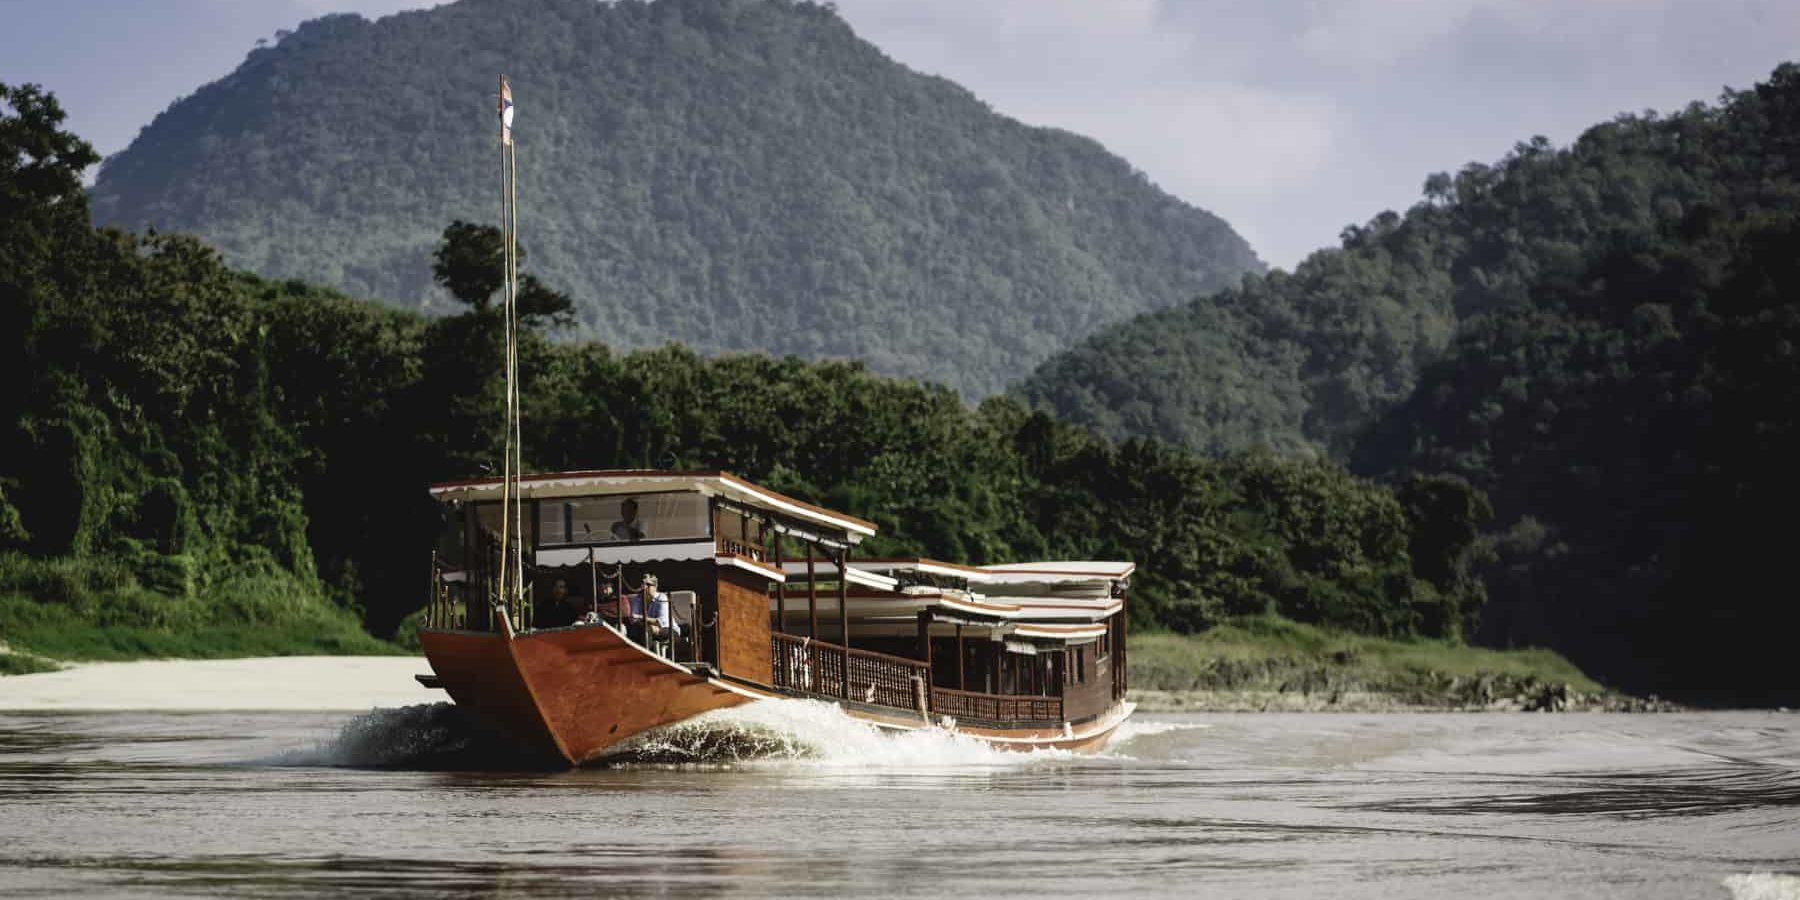 Luang Say Boat on the river Mekong in Laos, a great river experience